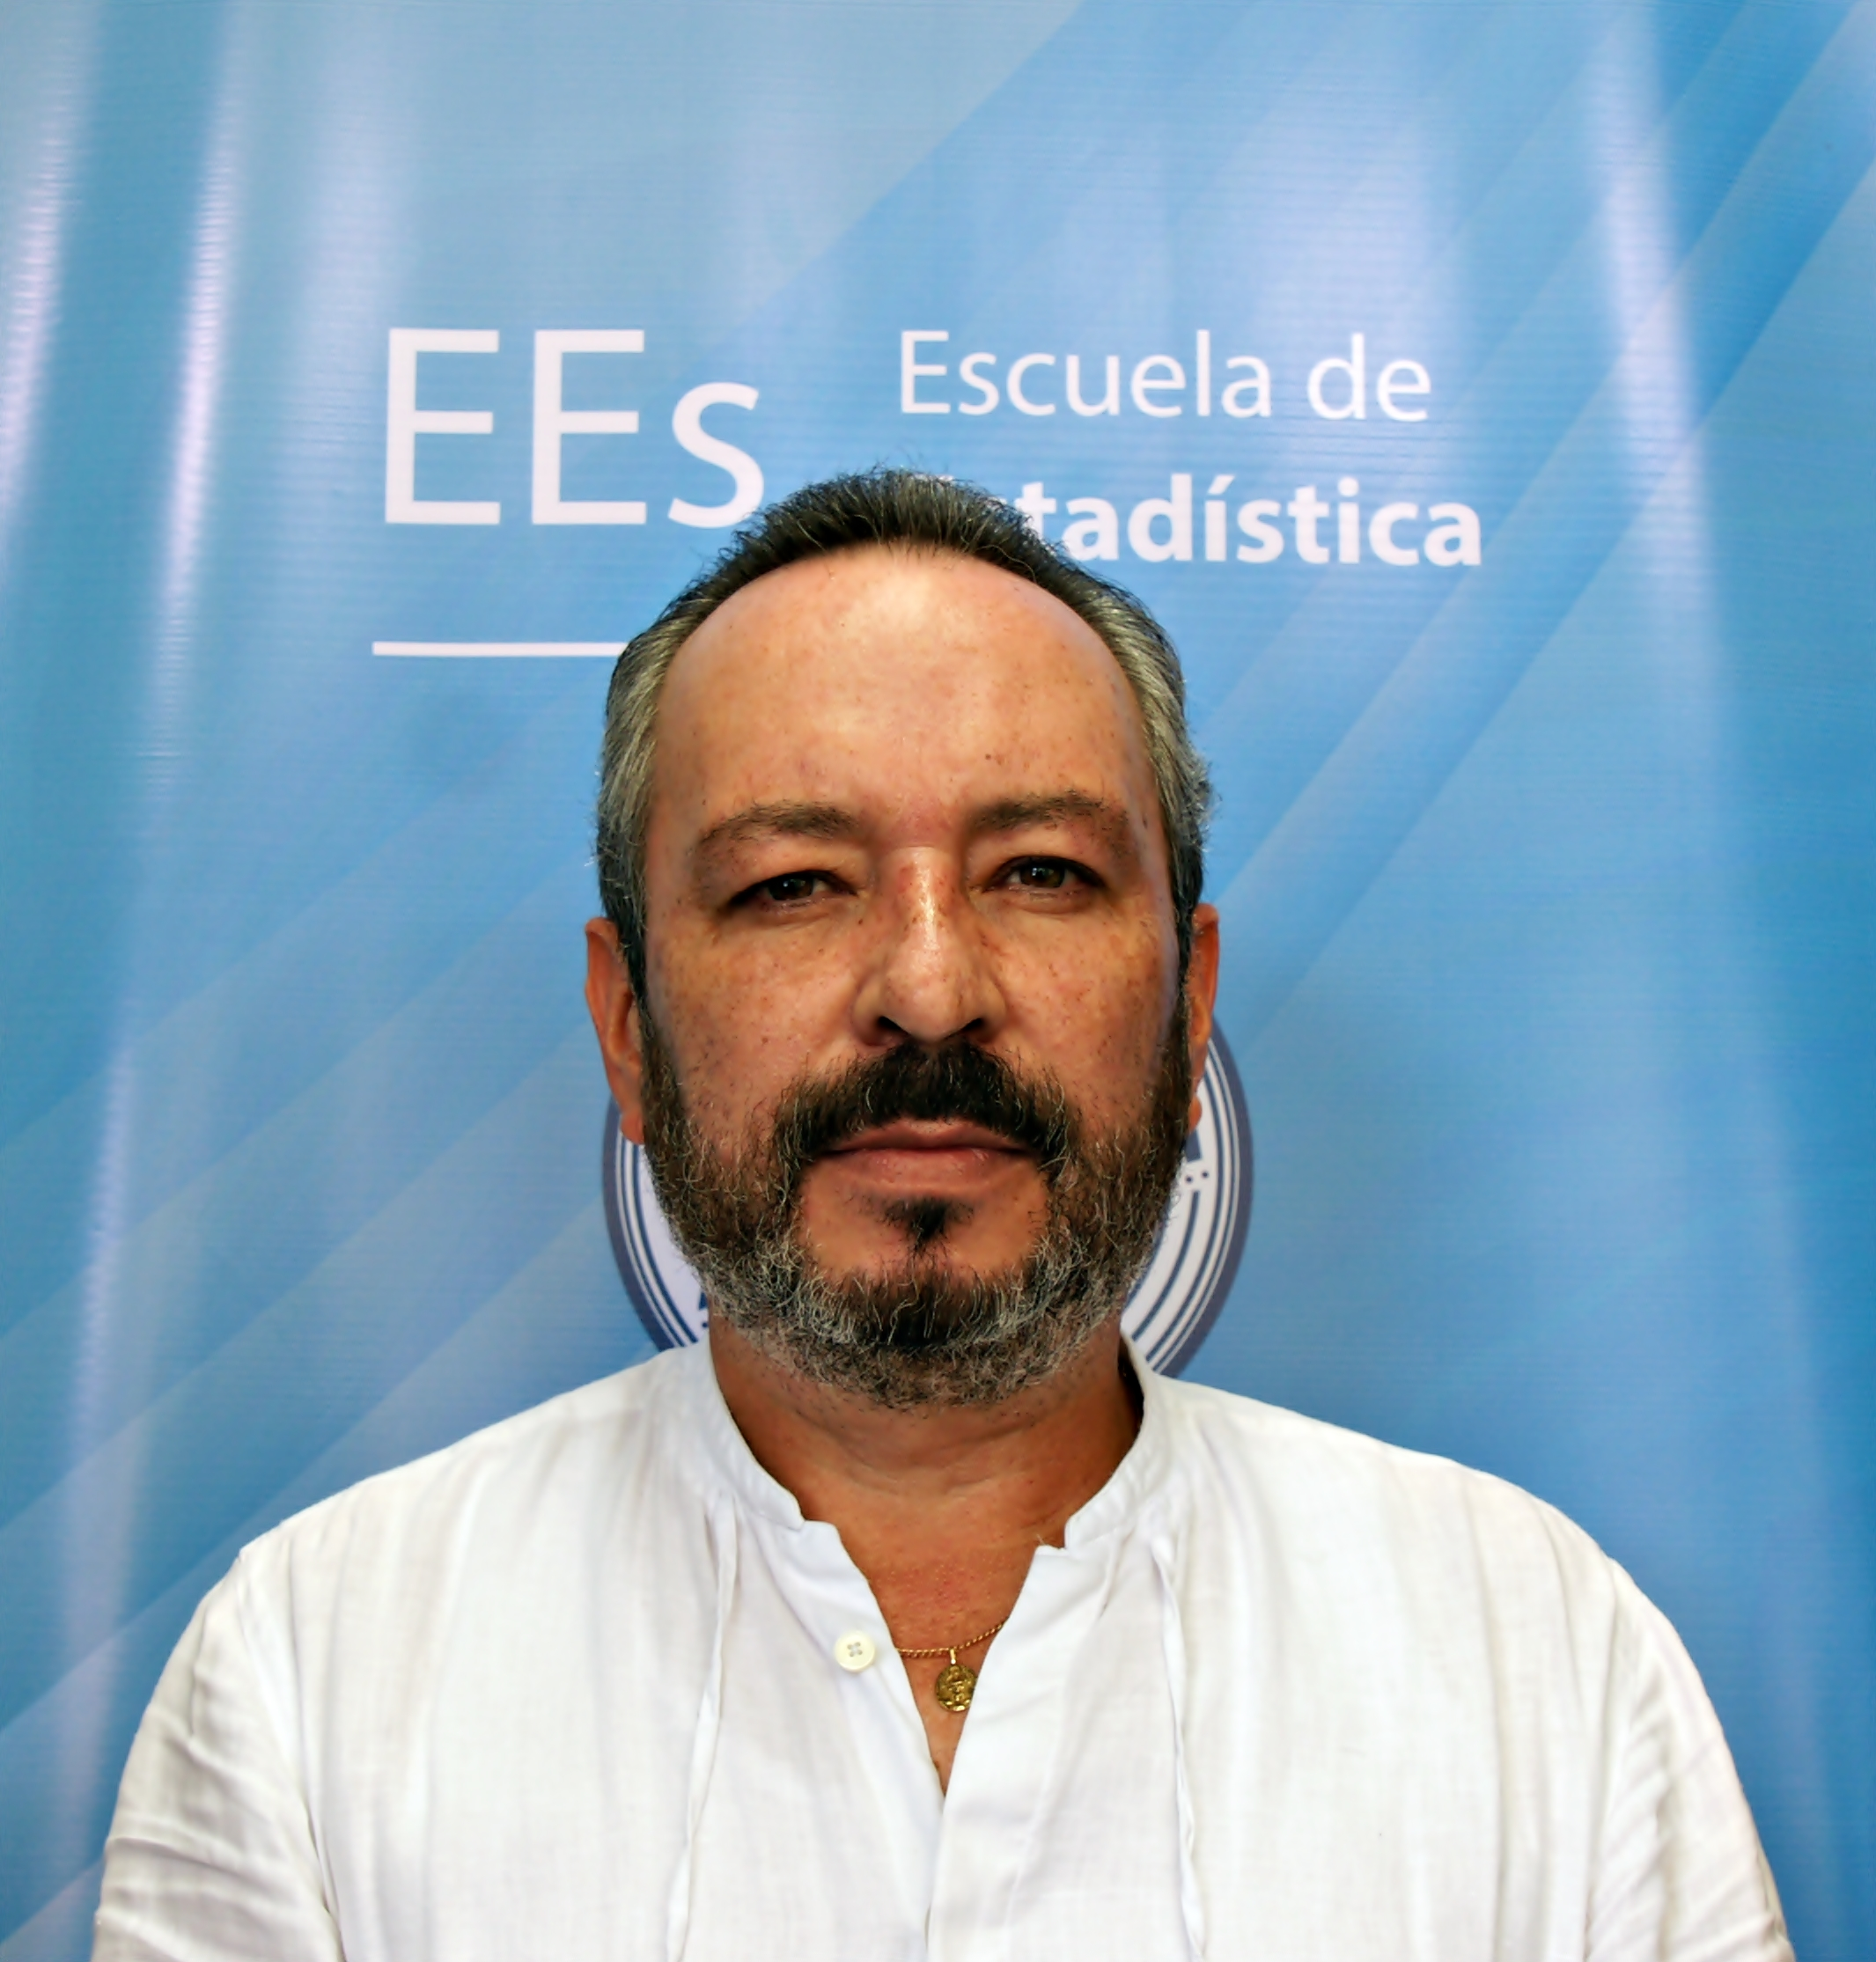 M.Sc. Johnny Madrigal Pana